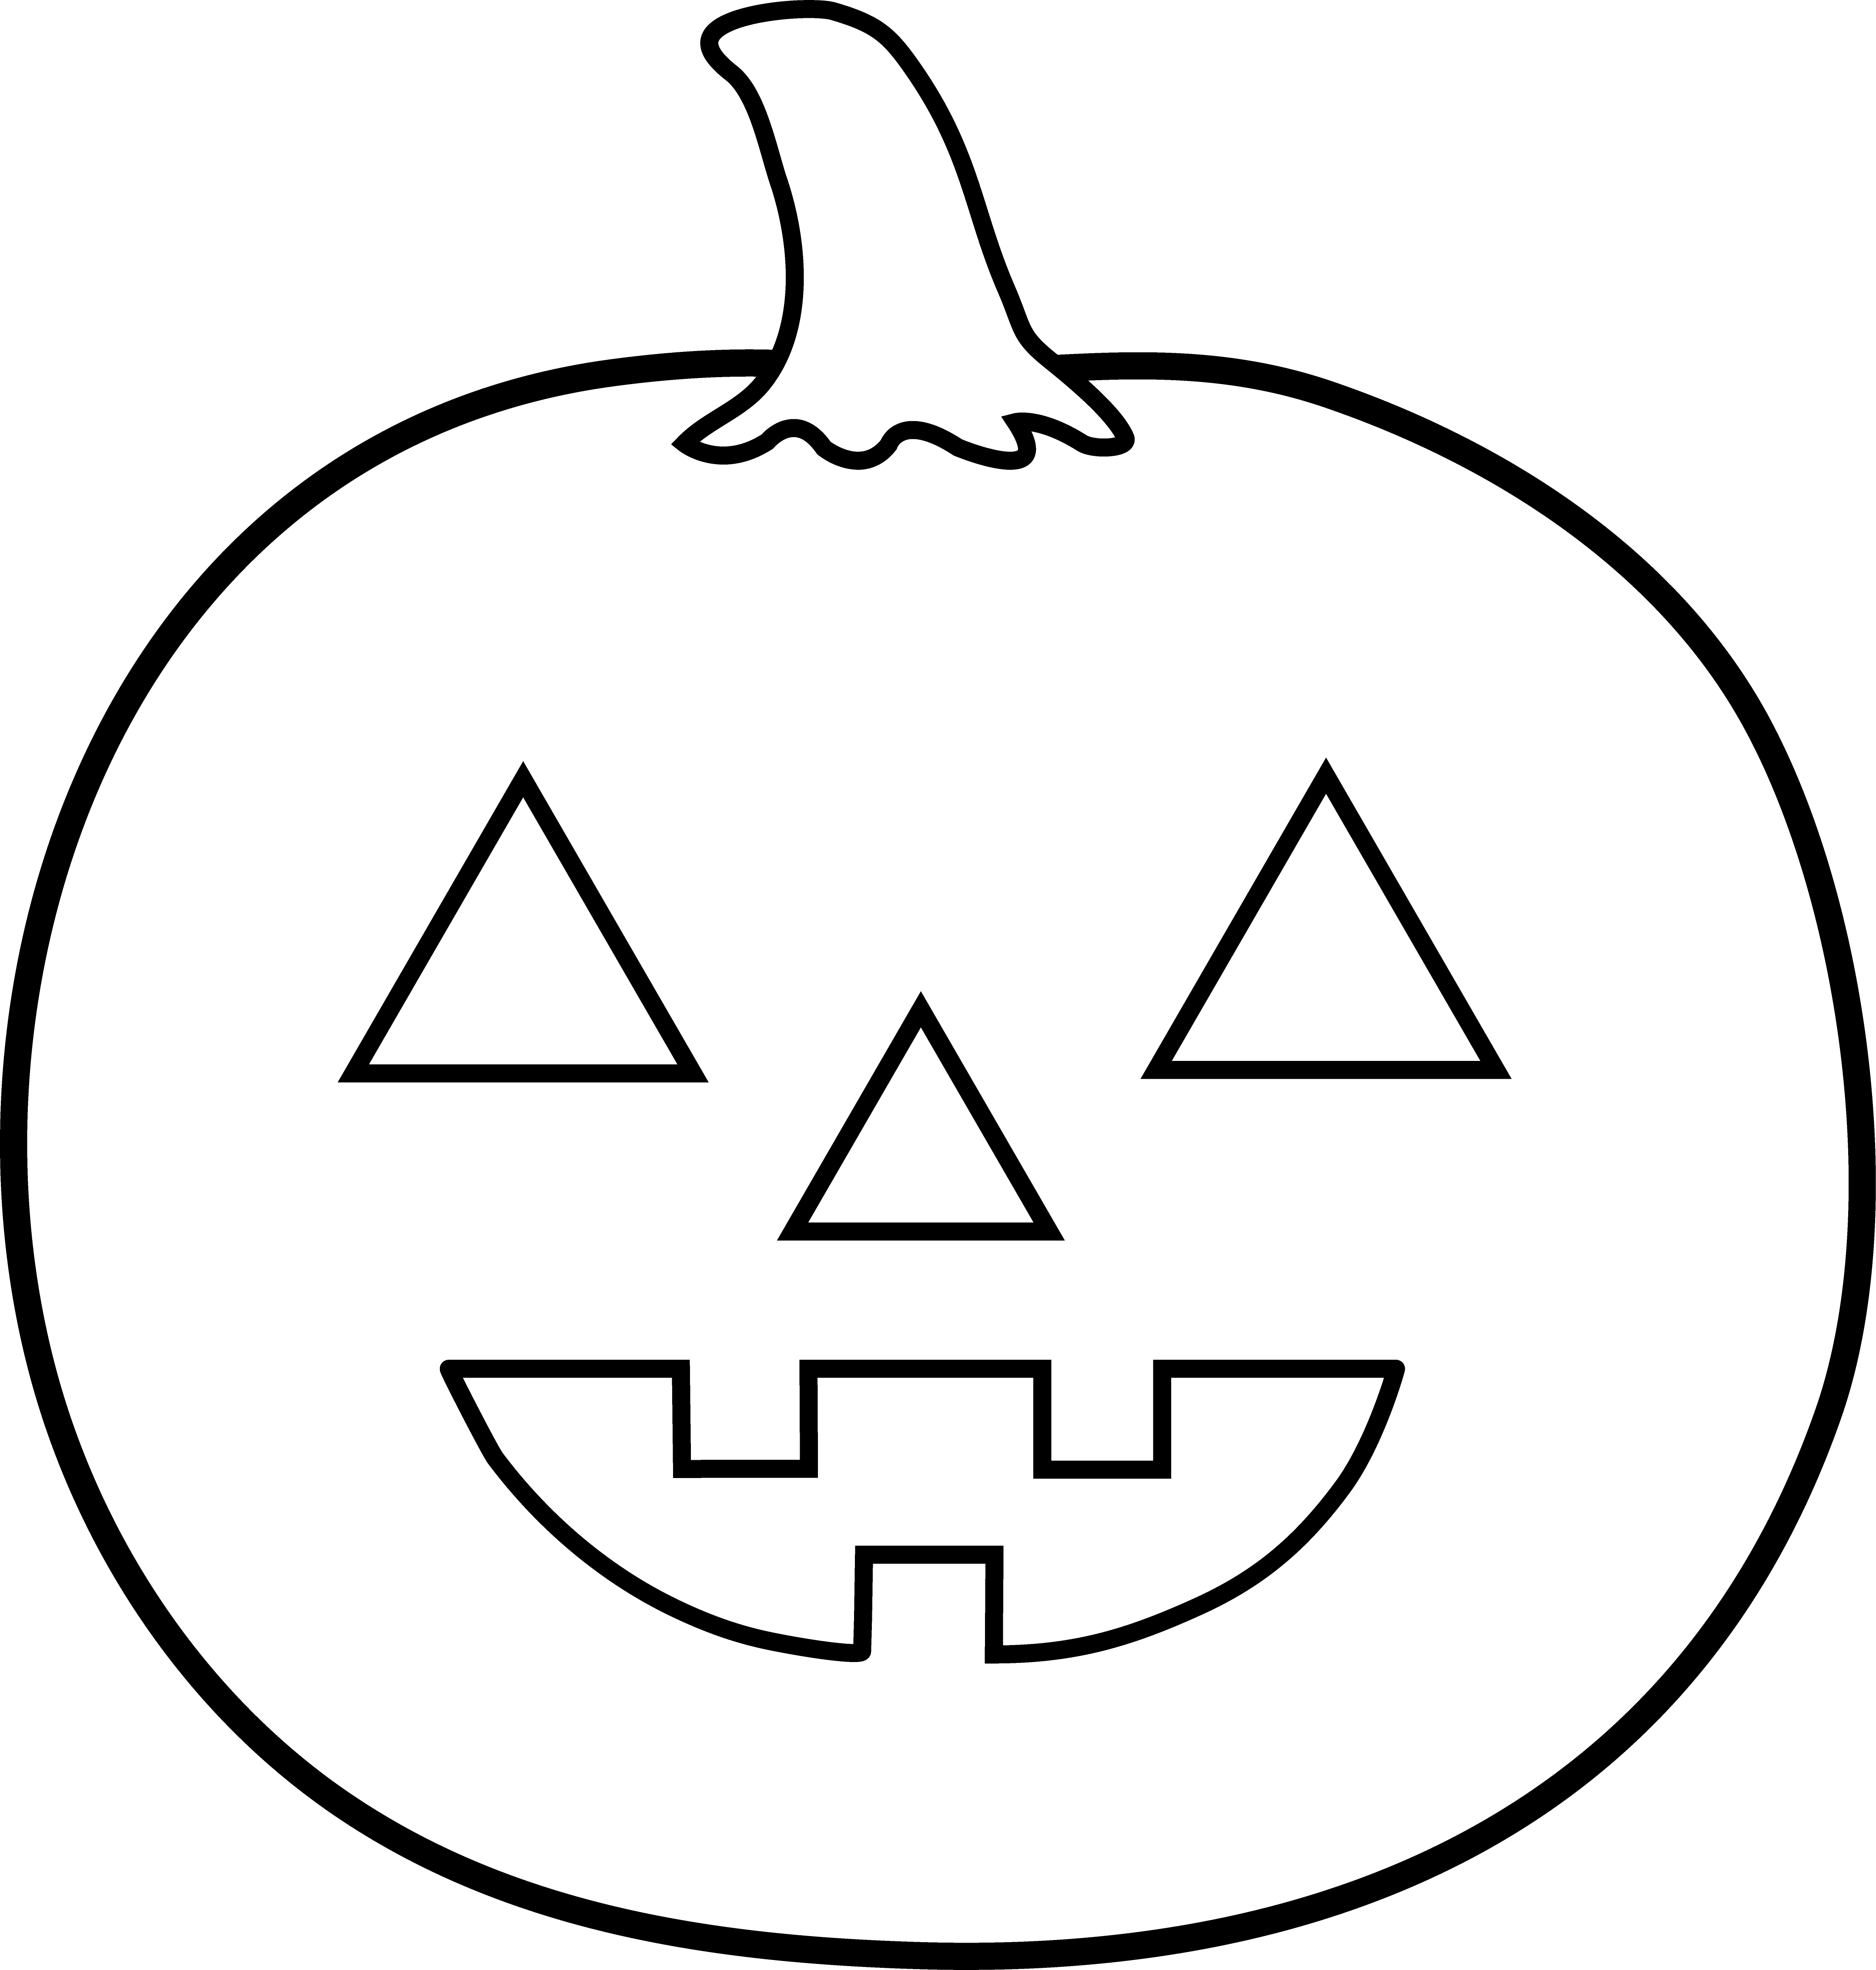 Pumpkin black and white pumpkin outline clipart black and white.